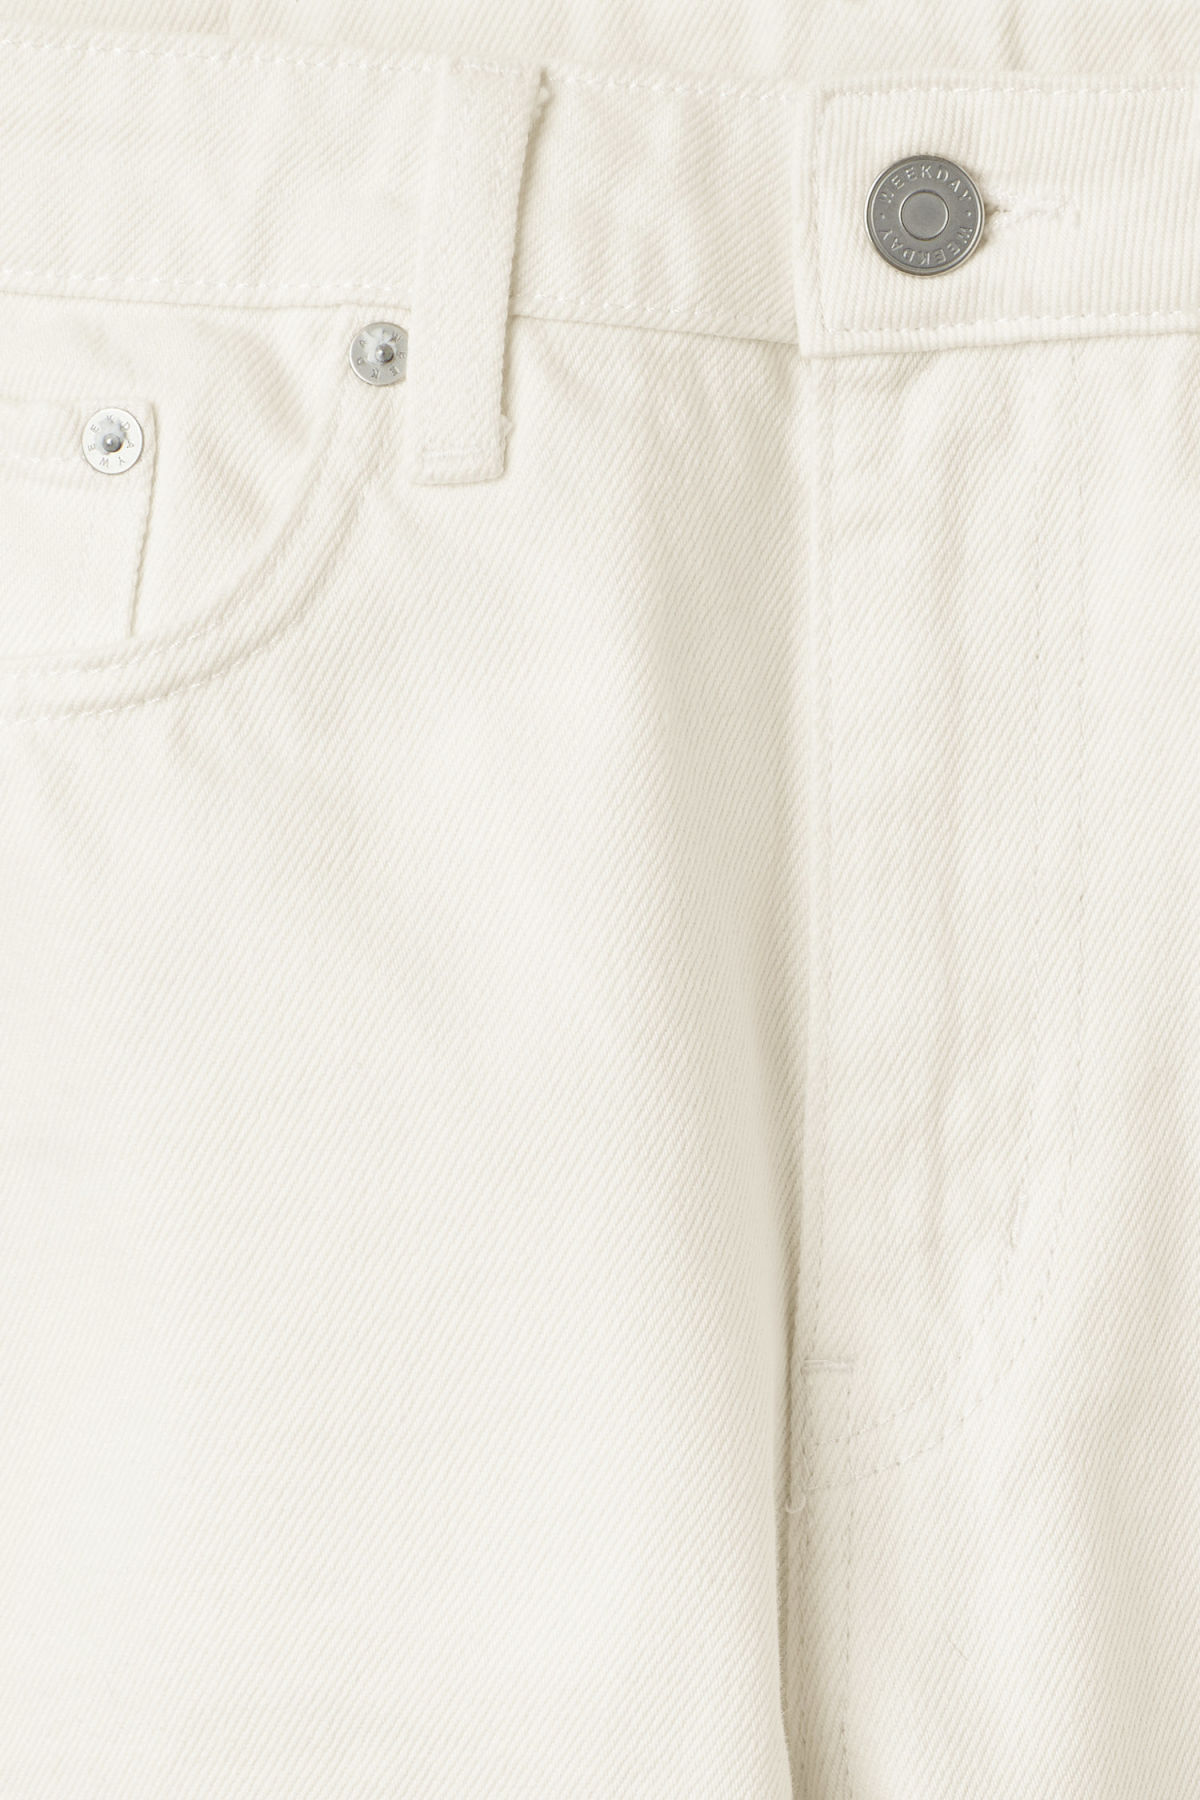 Detailed image of Weekday voyage 2-tone jeans in white